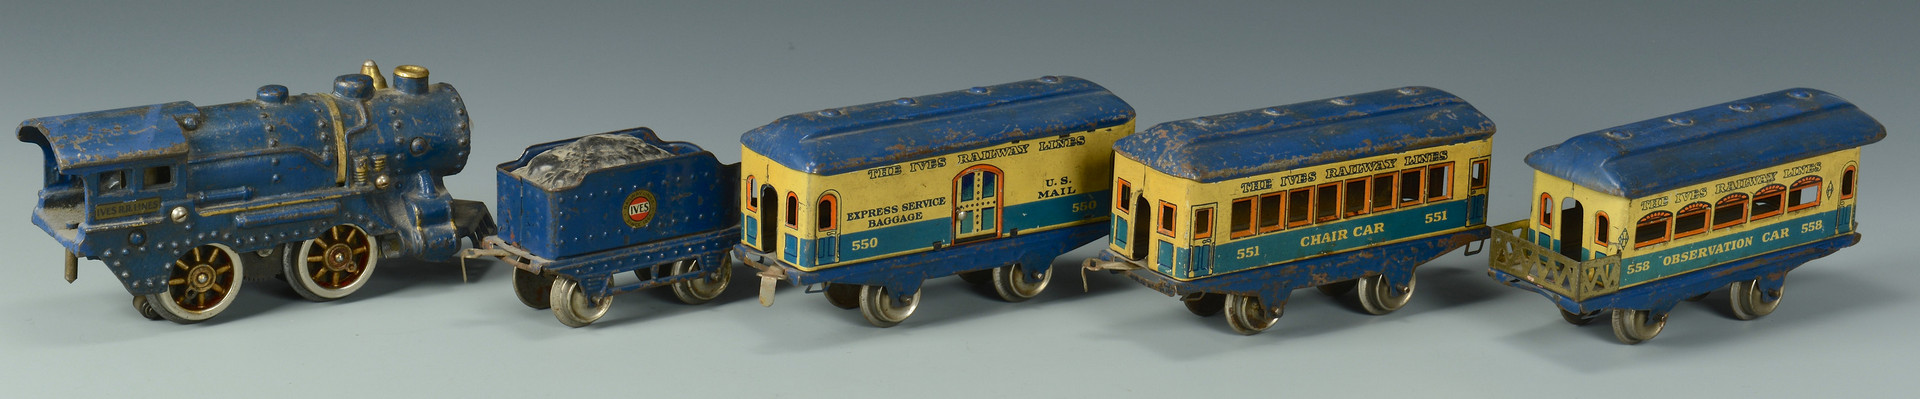 Lot 470: Toy Trains: Ives, Lionel, American Flyer